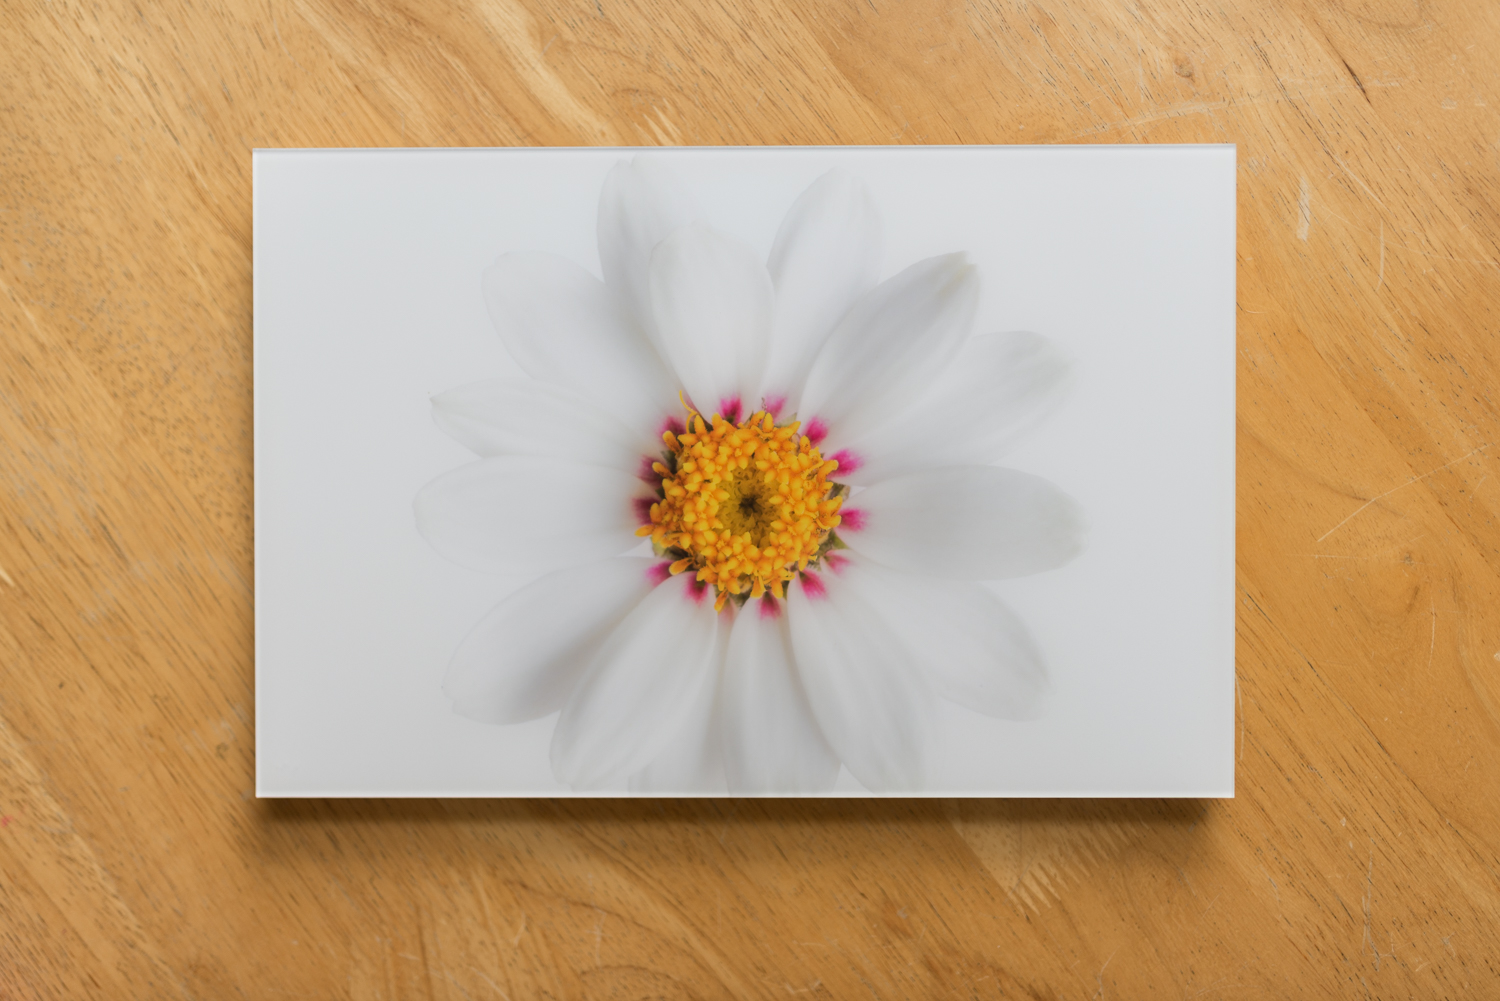 Print under acrylic glass, 8X12, top/side view.  A print under acrylic glass is a traditional print that is sealed between a crystal-clear acrylic glass (face) and an aluminum Dibond base. Silicone adhesive is applied around the borders to keep the print airtight and protected.